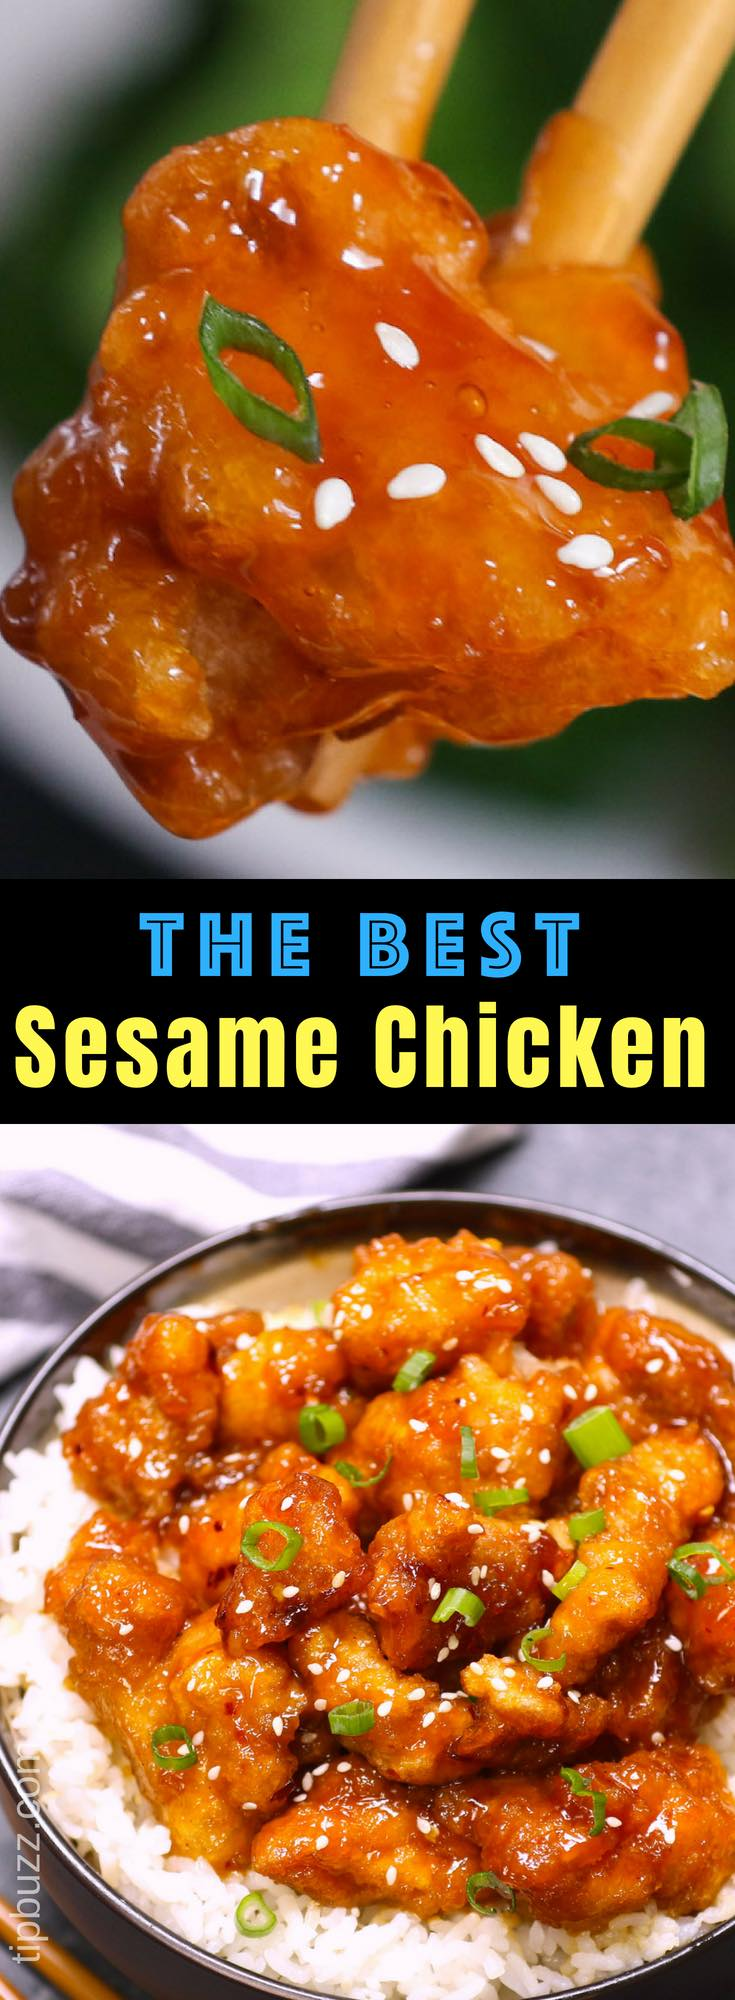 Sticky and crispy Easy Sesame Chicken made fast and simple, with the most delicious sweet and savory sesame chicken sauce.  This easy Chinese recipe takes less than 30 minutes to make and is so much better than takeout! #SesameChicken